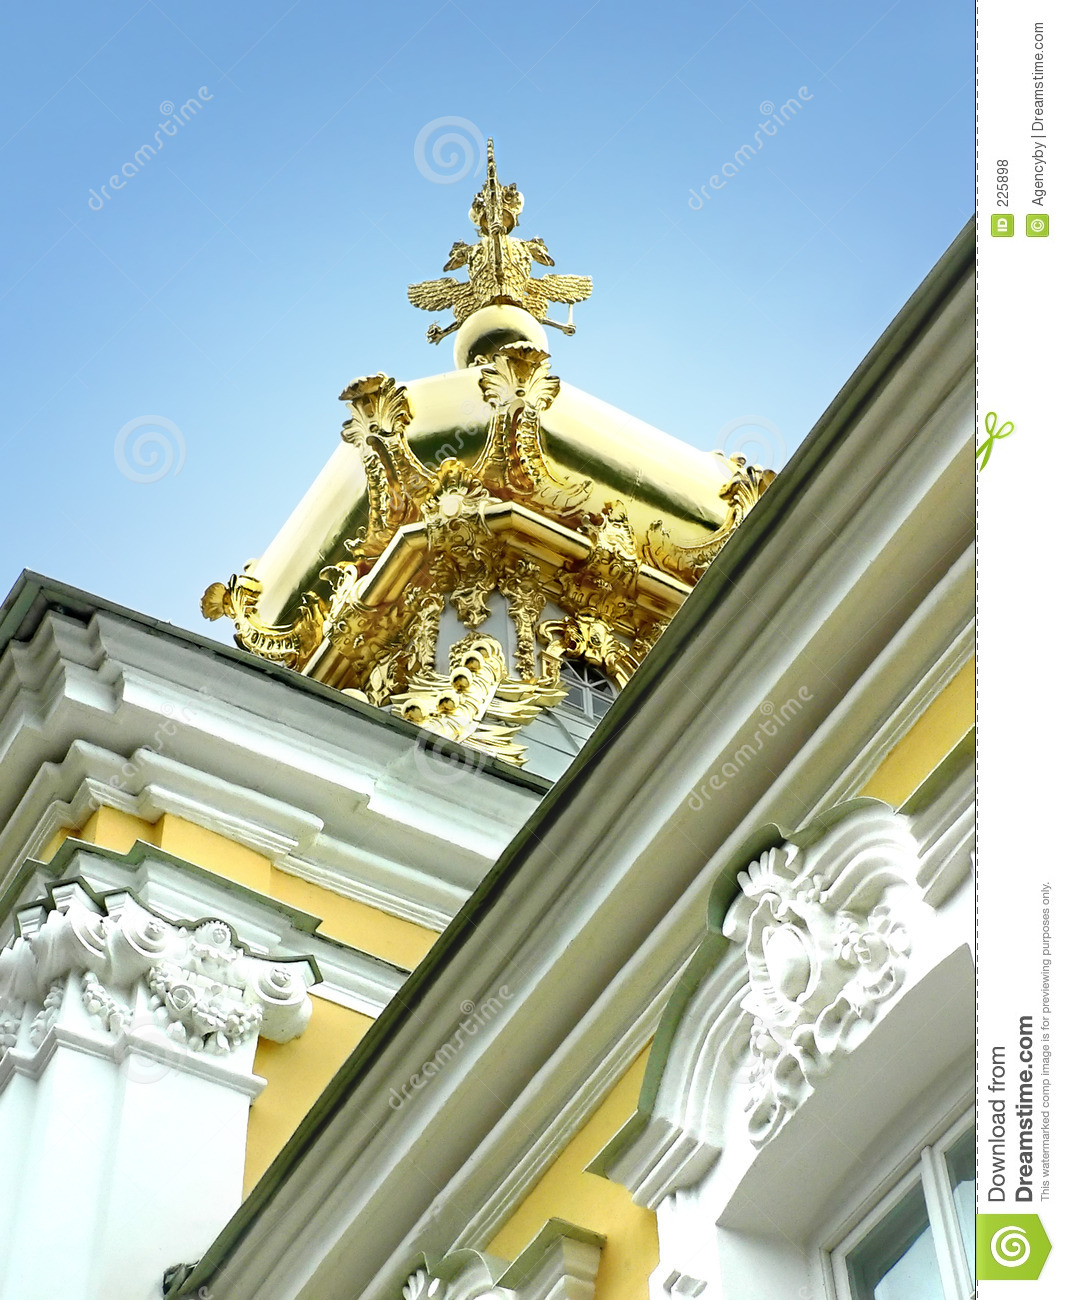 Download Gold cupola stock photo. Image of outdoor, federation, building - 225898